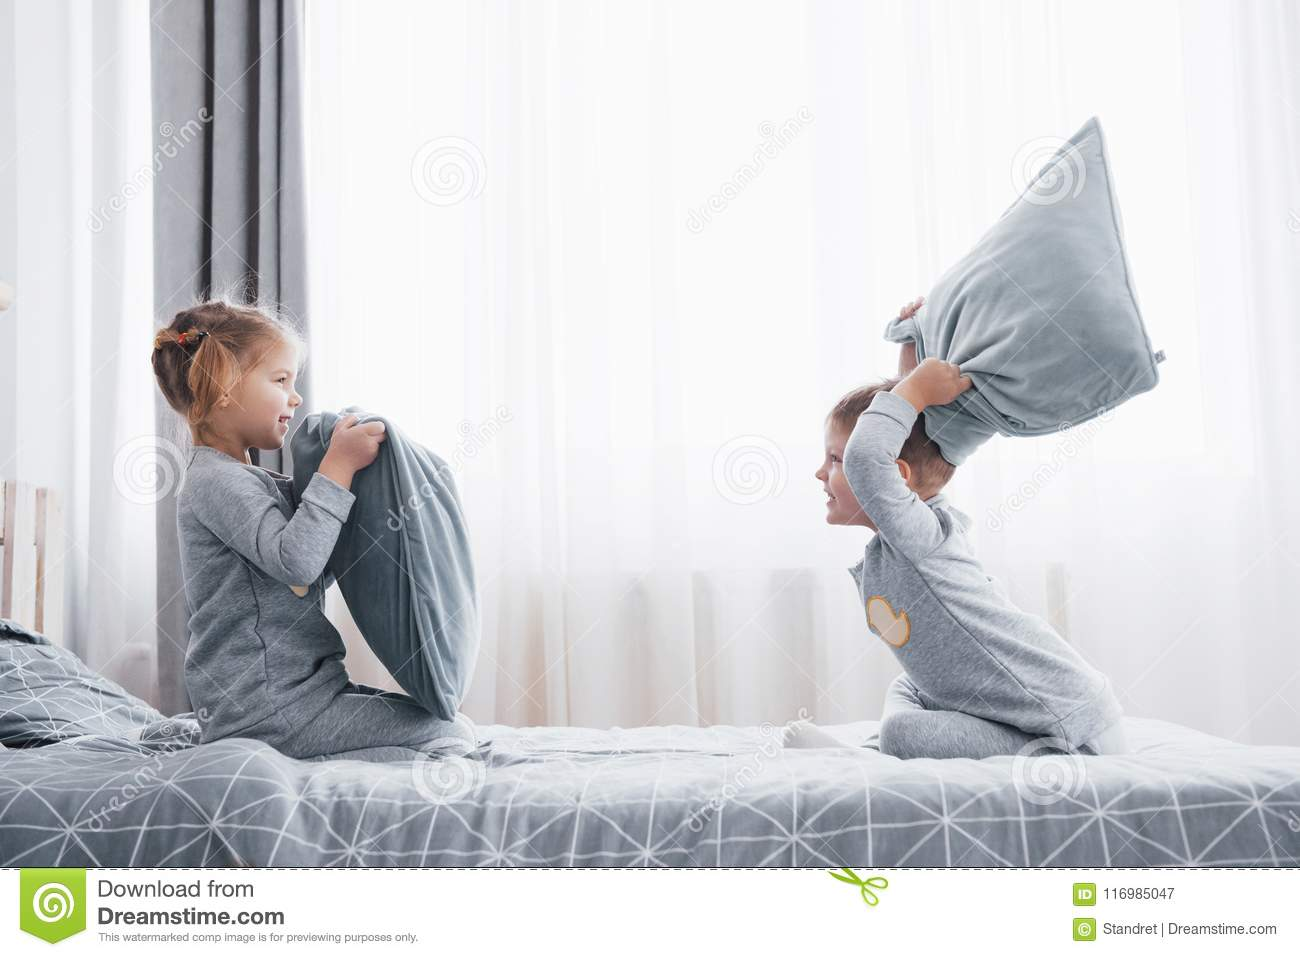 Little boy and girl staged a pillow fight on the bed in the bedroom. Naughty children beat each other pillows. They like